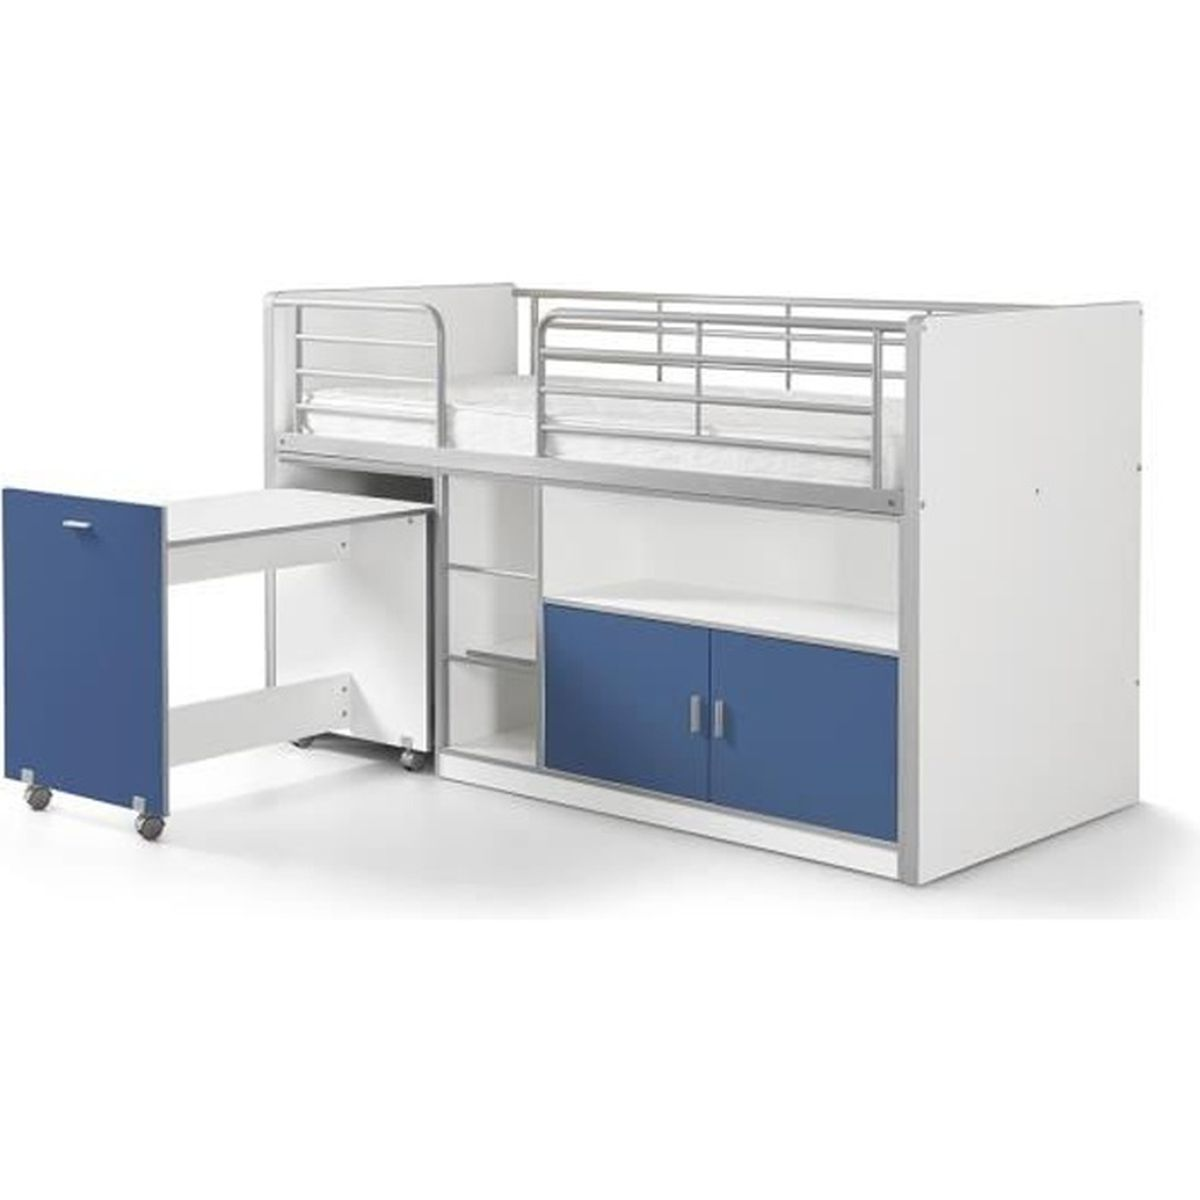 vipack lit mezzanine bureau rangement 90x 200 bonny bleu achat vente lit mezzanine. Black Bedroom Furniture Sets. Home Design Ideas